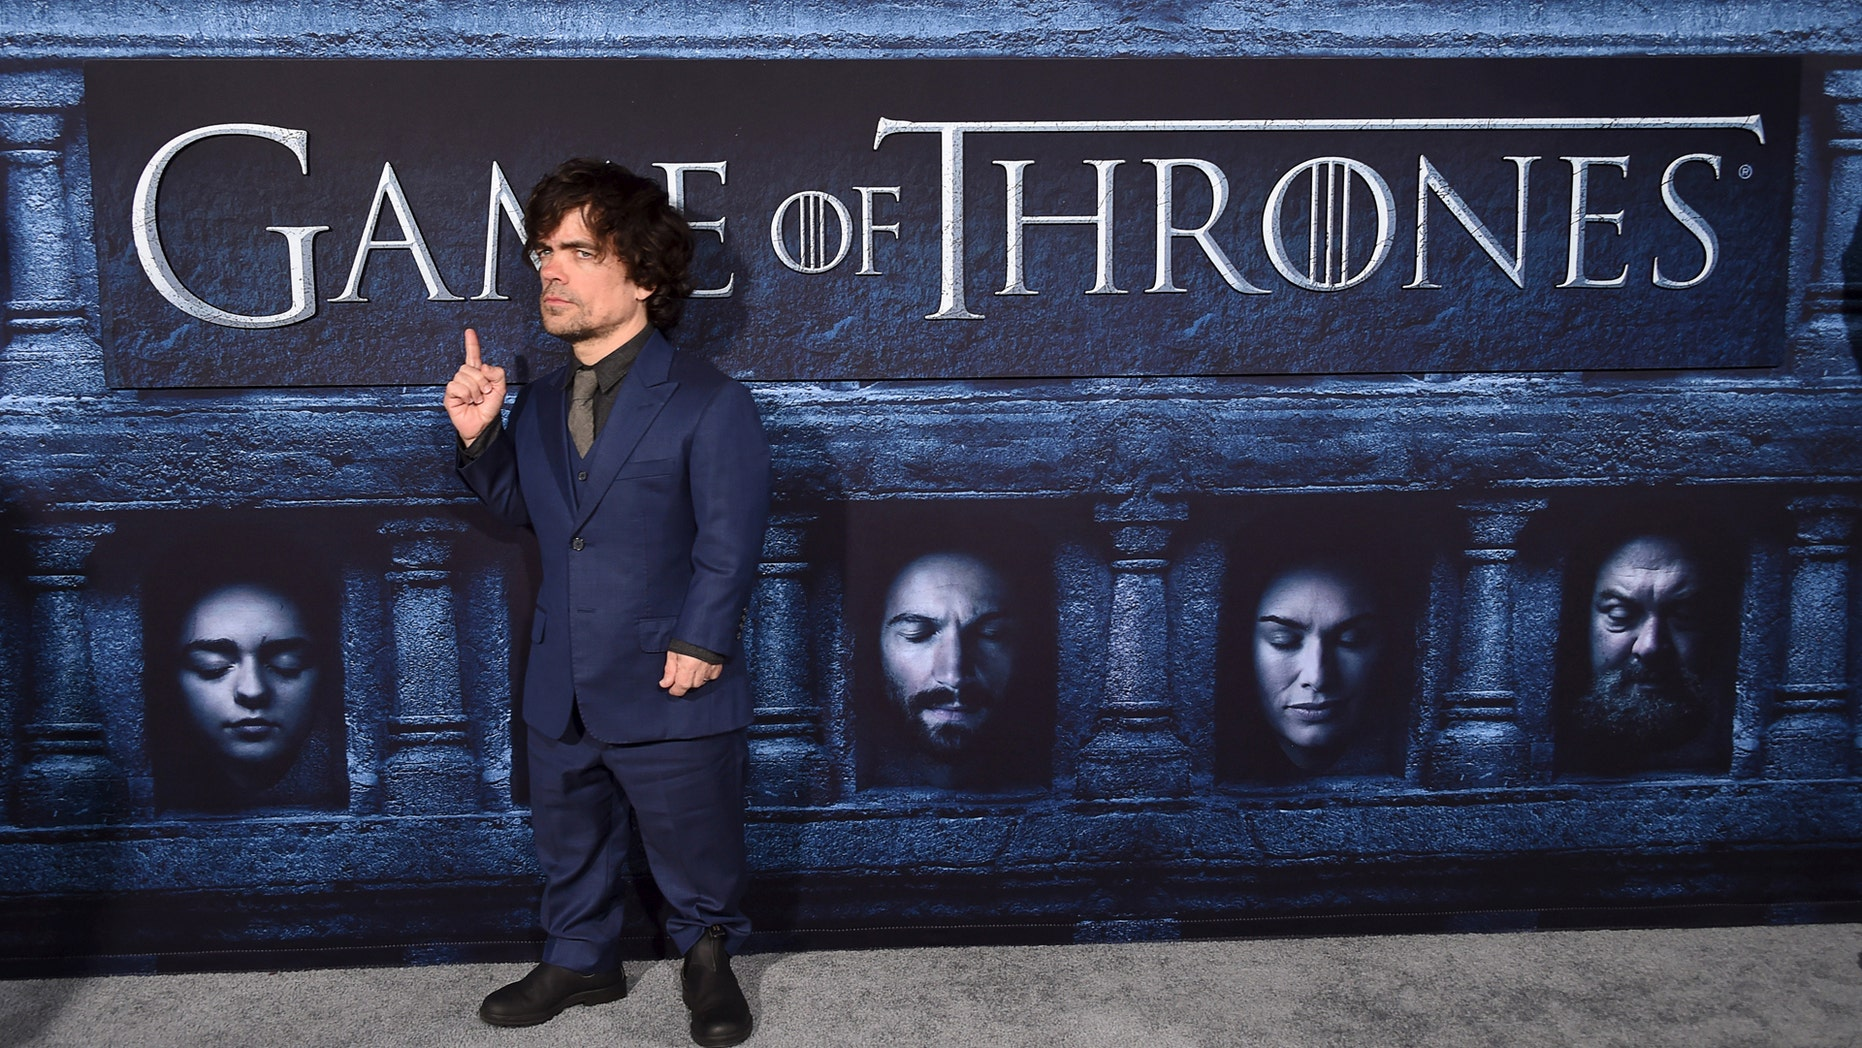 """File photo: Cast member Peter Dinklage attends the premiere for the sixth season of HBO's """"Game of Thrones"""" in Los Angeles, California, U.S. April 10, 2016. (REUTERS/Phil McCarten/File Photo)"""